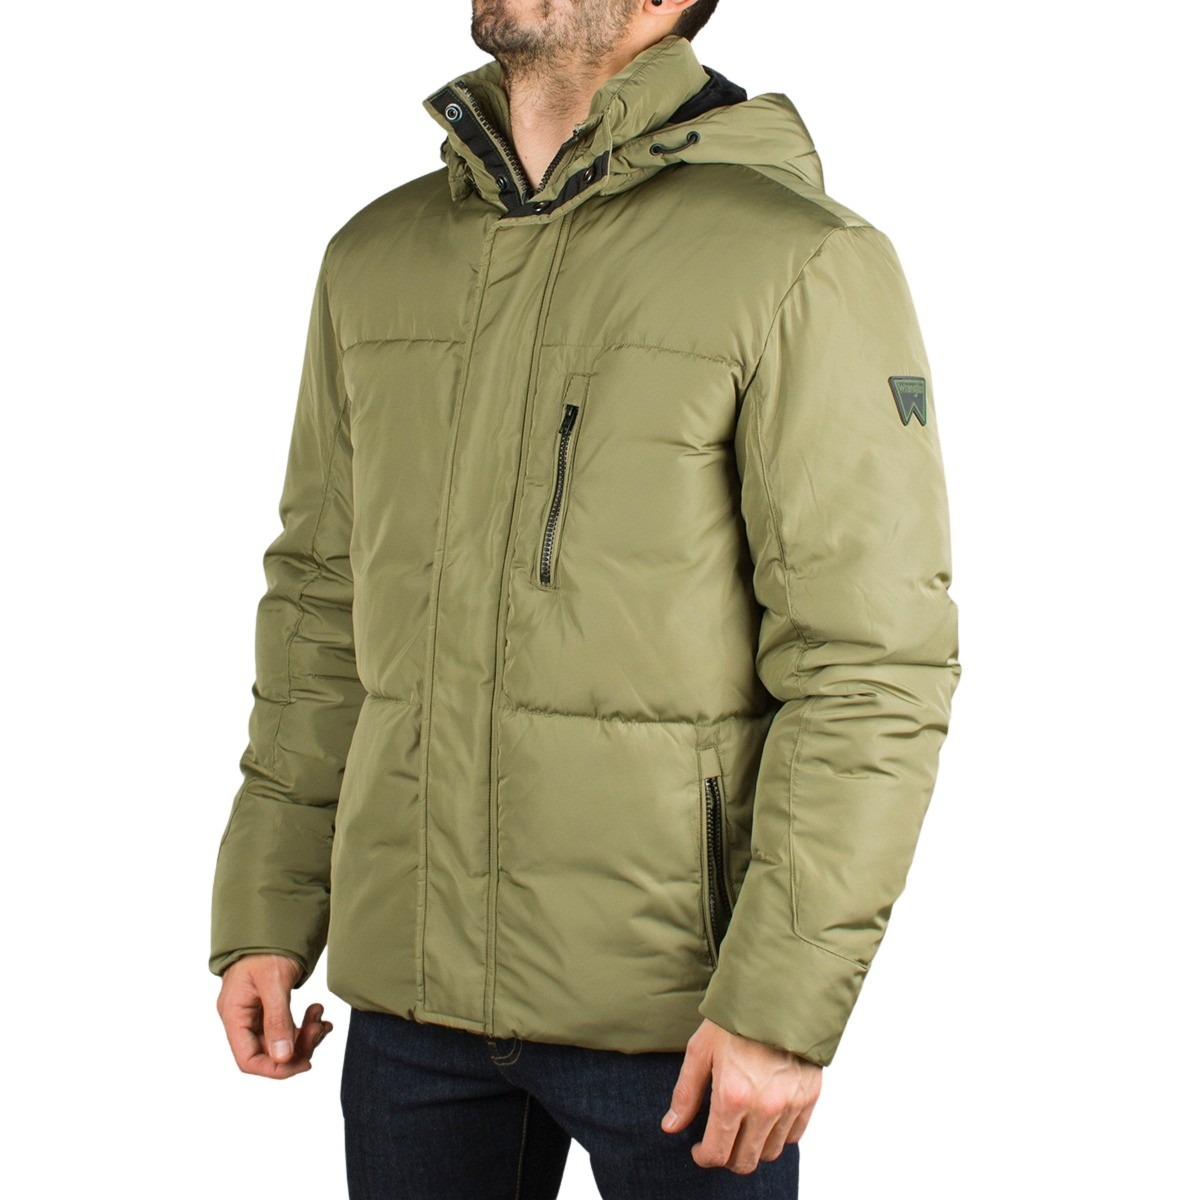 Wrangler Chaqueta Protector Dusty Olive Verde Hombre